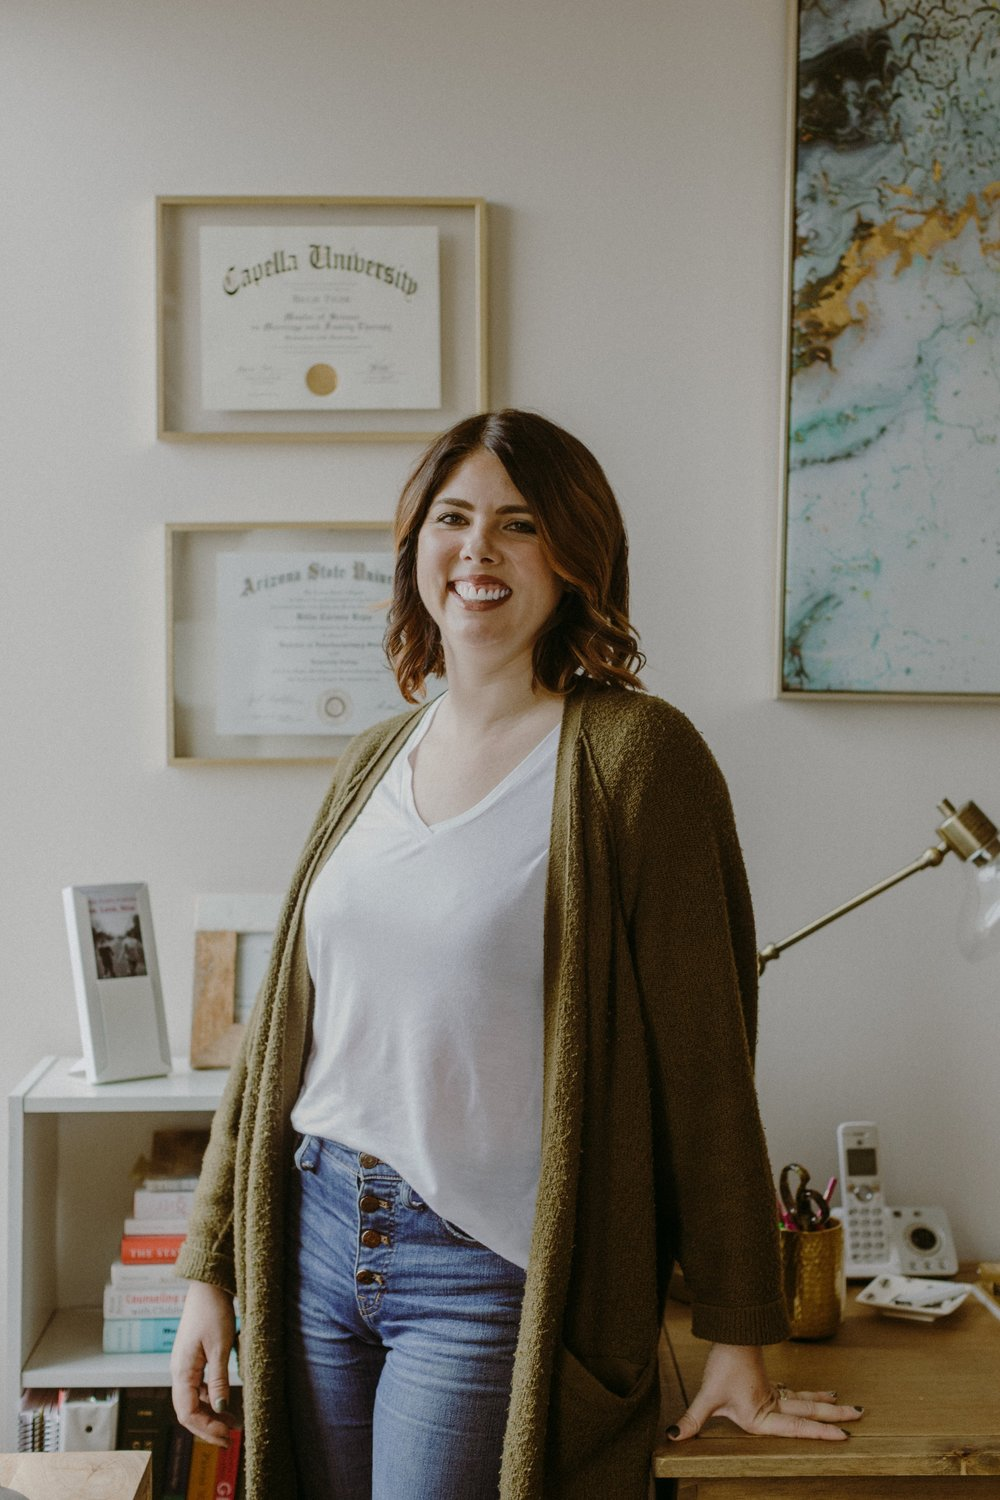 Billie Tyler is a therapist in Spokane, WA